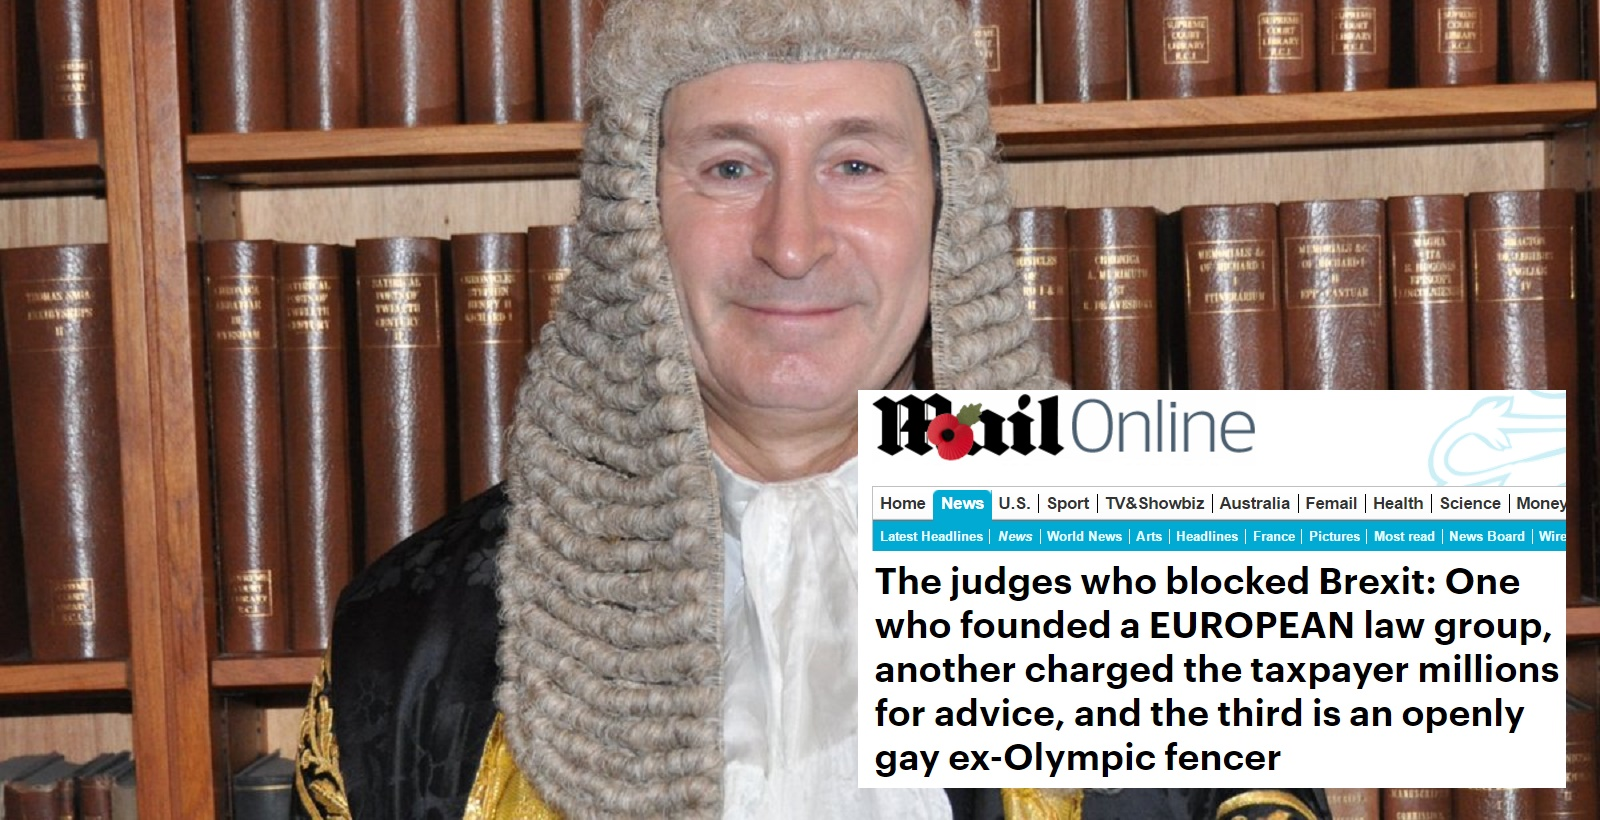 Openly gay judges